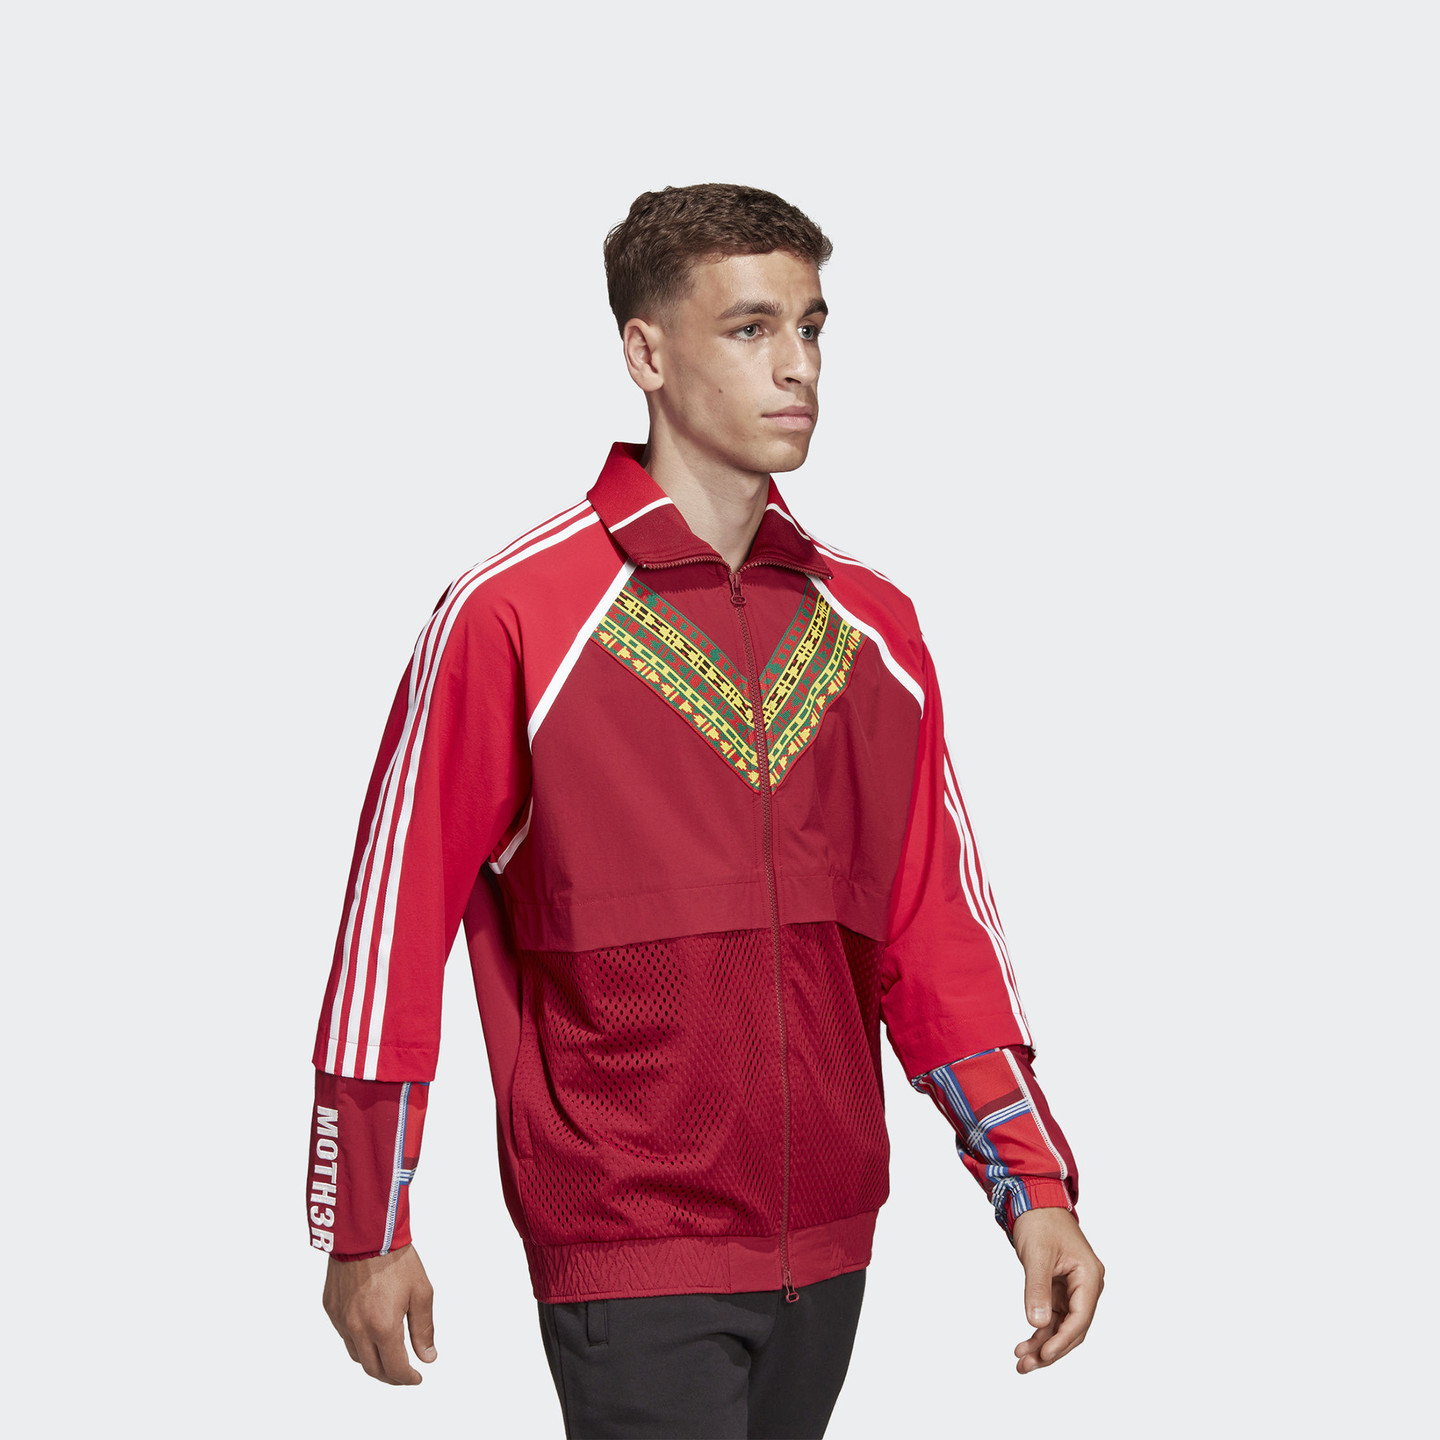 Adidas Pharrell Williams 'Solar HU' Track Top Collegiate Burgundy / Yellow / Green DW9037